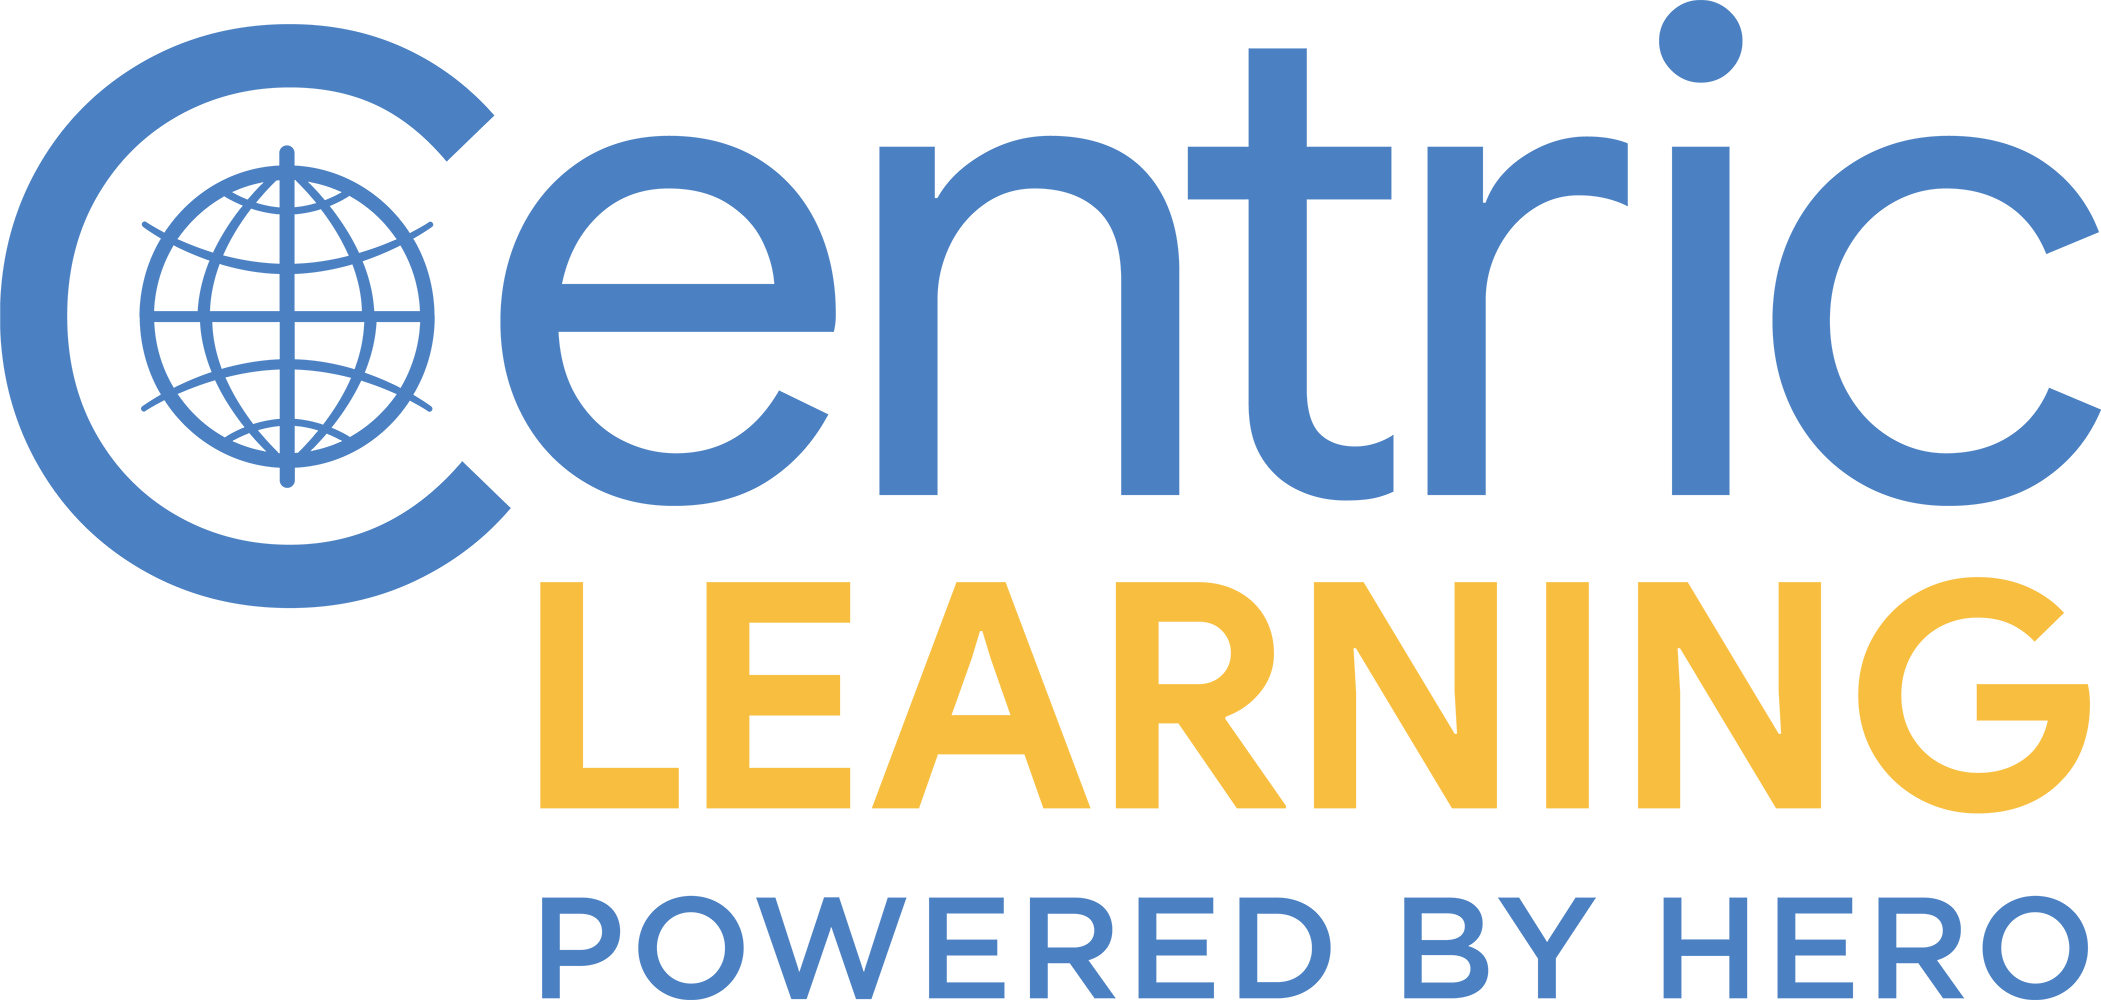 CentricLearning_logo_3c_PBH_1000